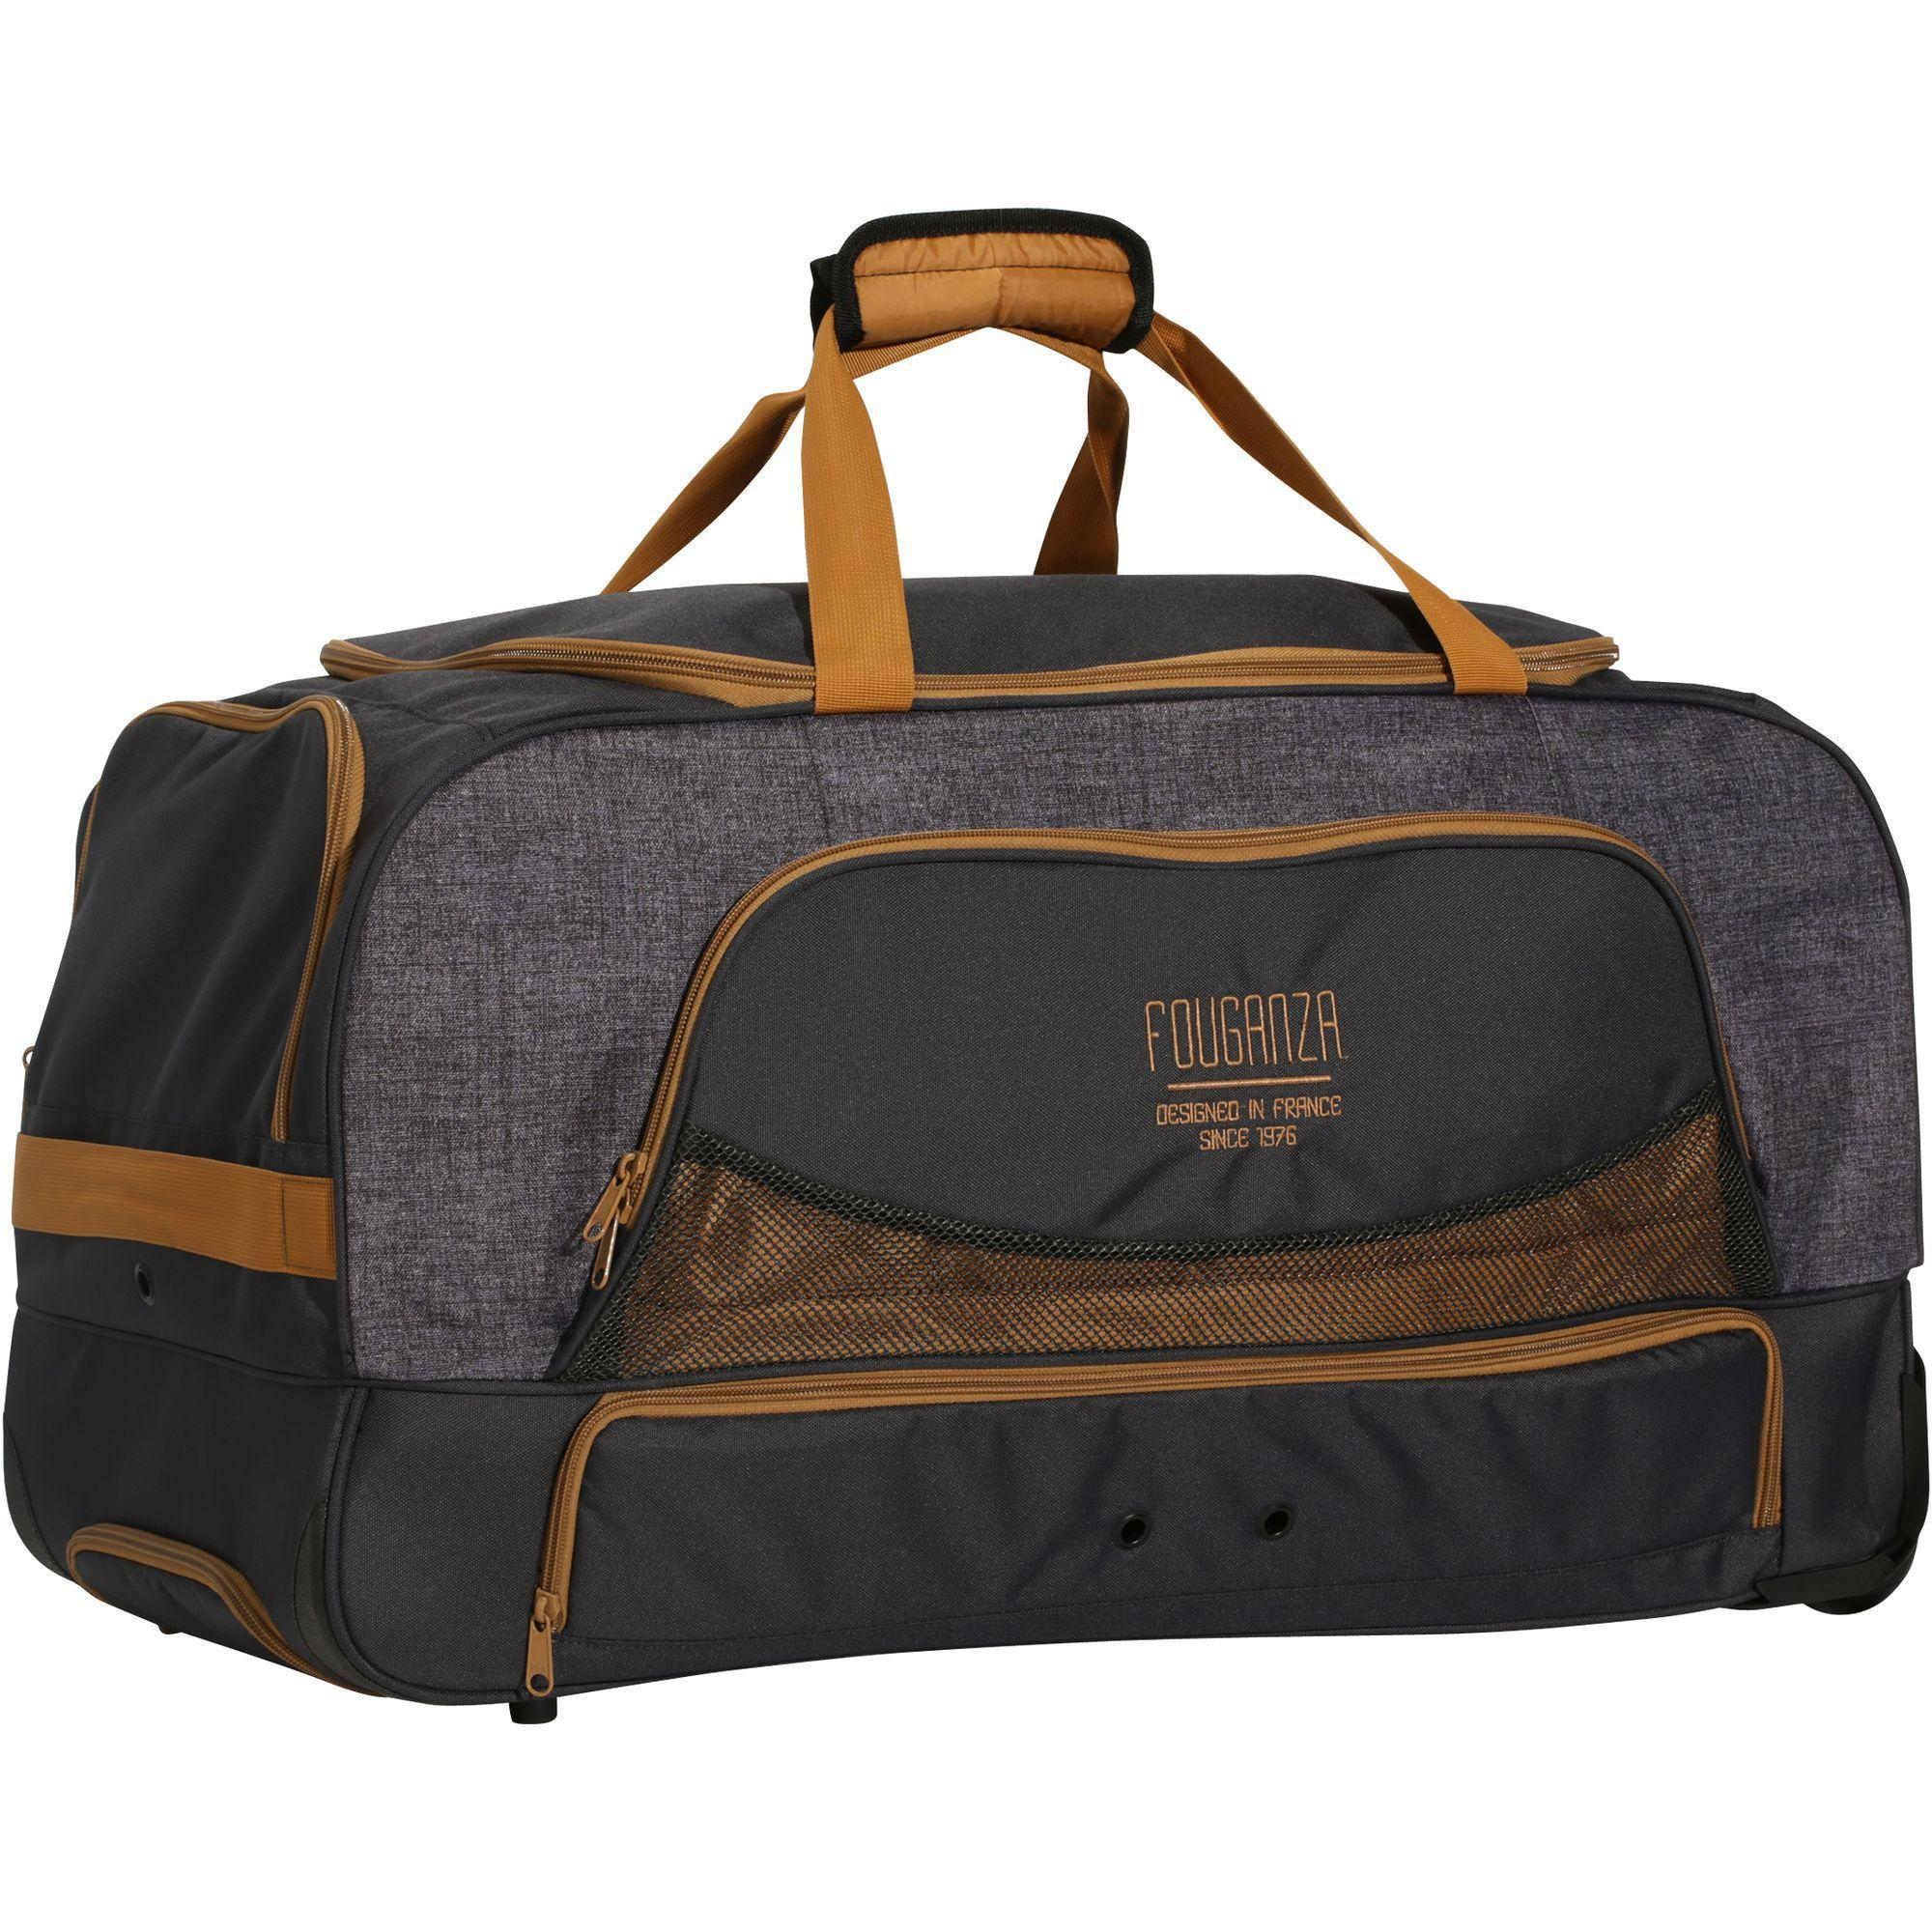 Trolley Bag For Horse Riding Gear 80l Grey Camel Fouganza